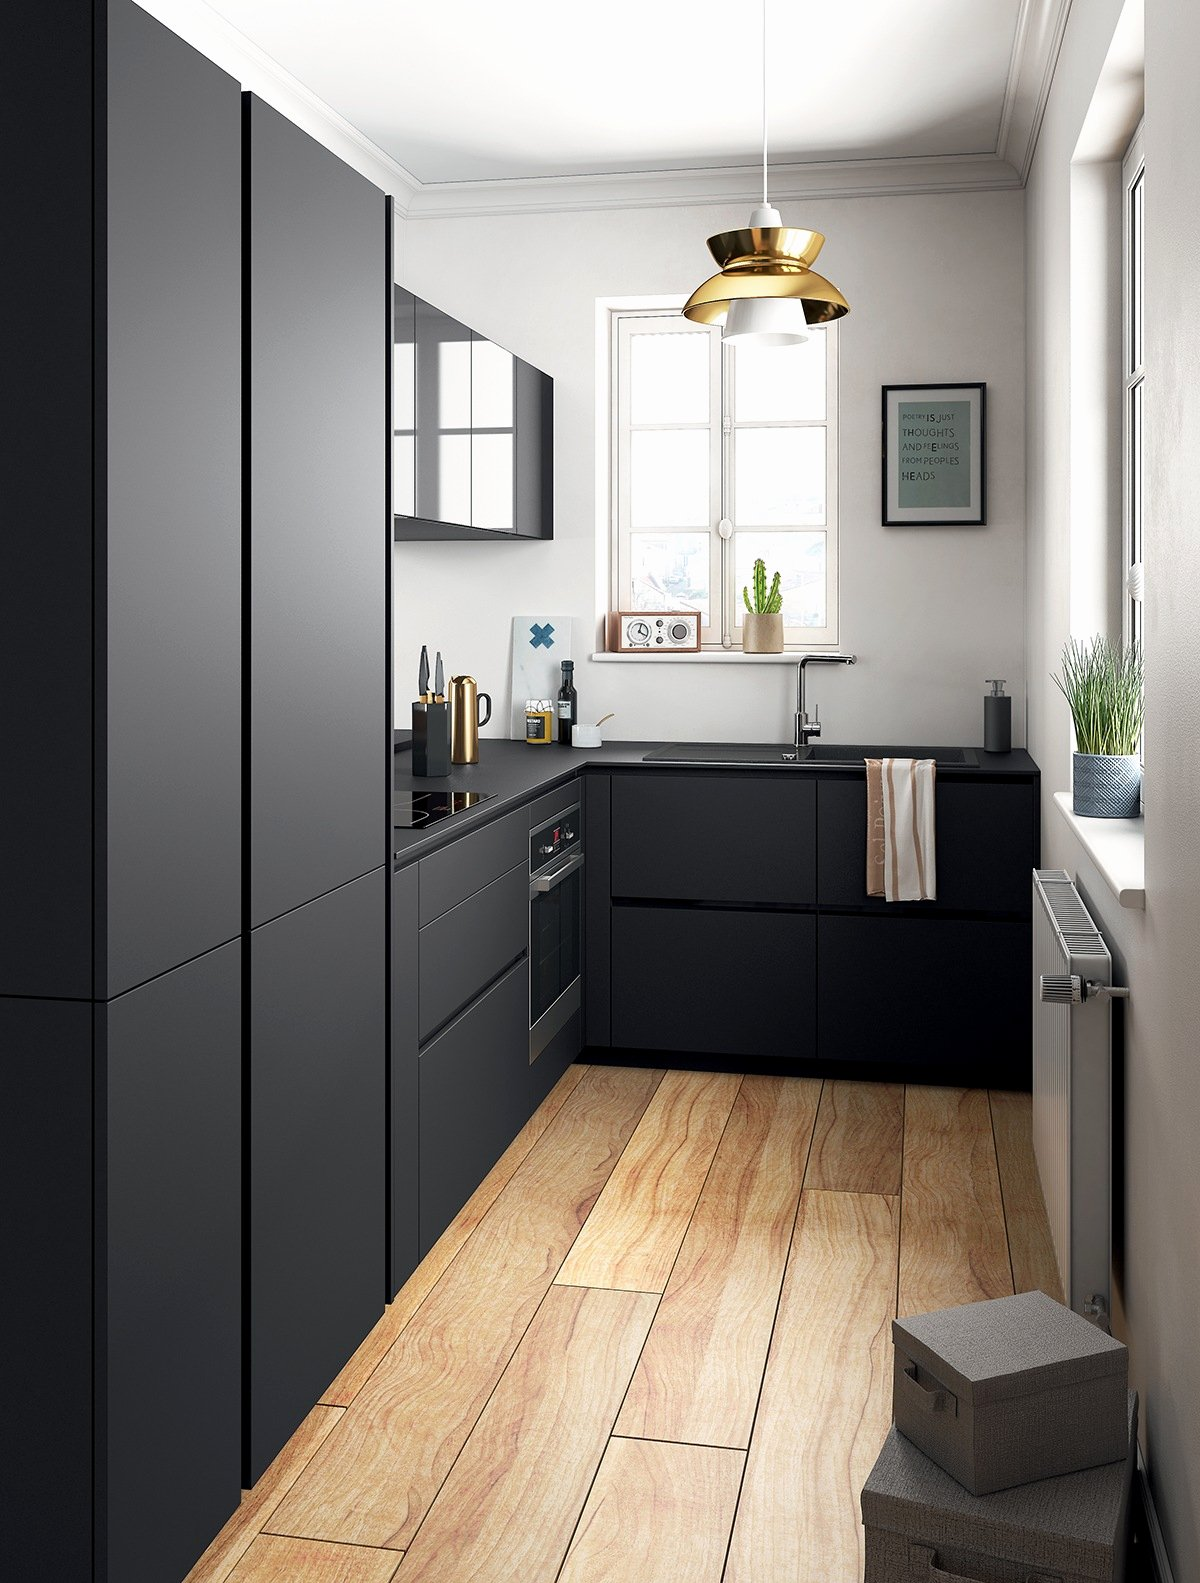 matte black finish Matte Black Finish Is This Week's Trend In Pinterest! Black Matte Finish Is This Weeks Trends In Pinterest1